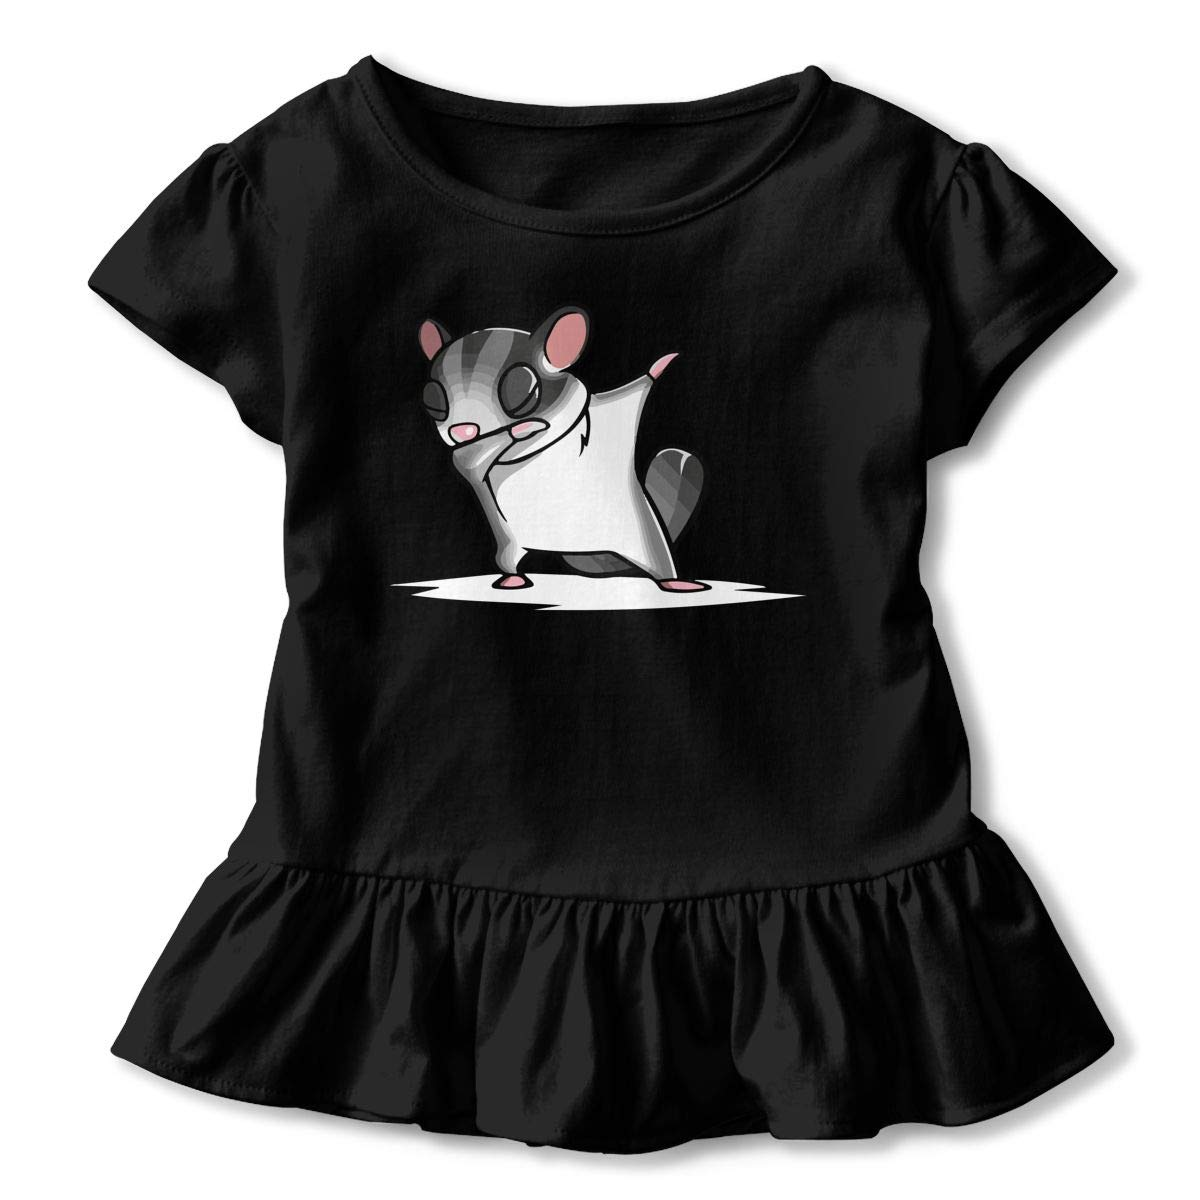 Little Girls Dabbing Sugar Glider Funny Short Sleeve Cotton T Shirts Basic Tops Tee Clothes